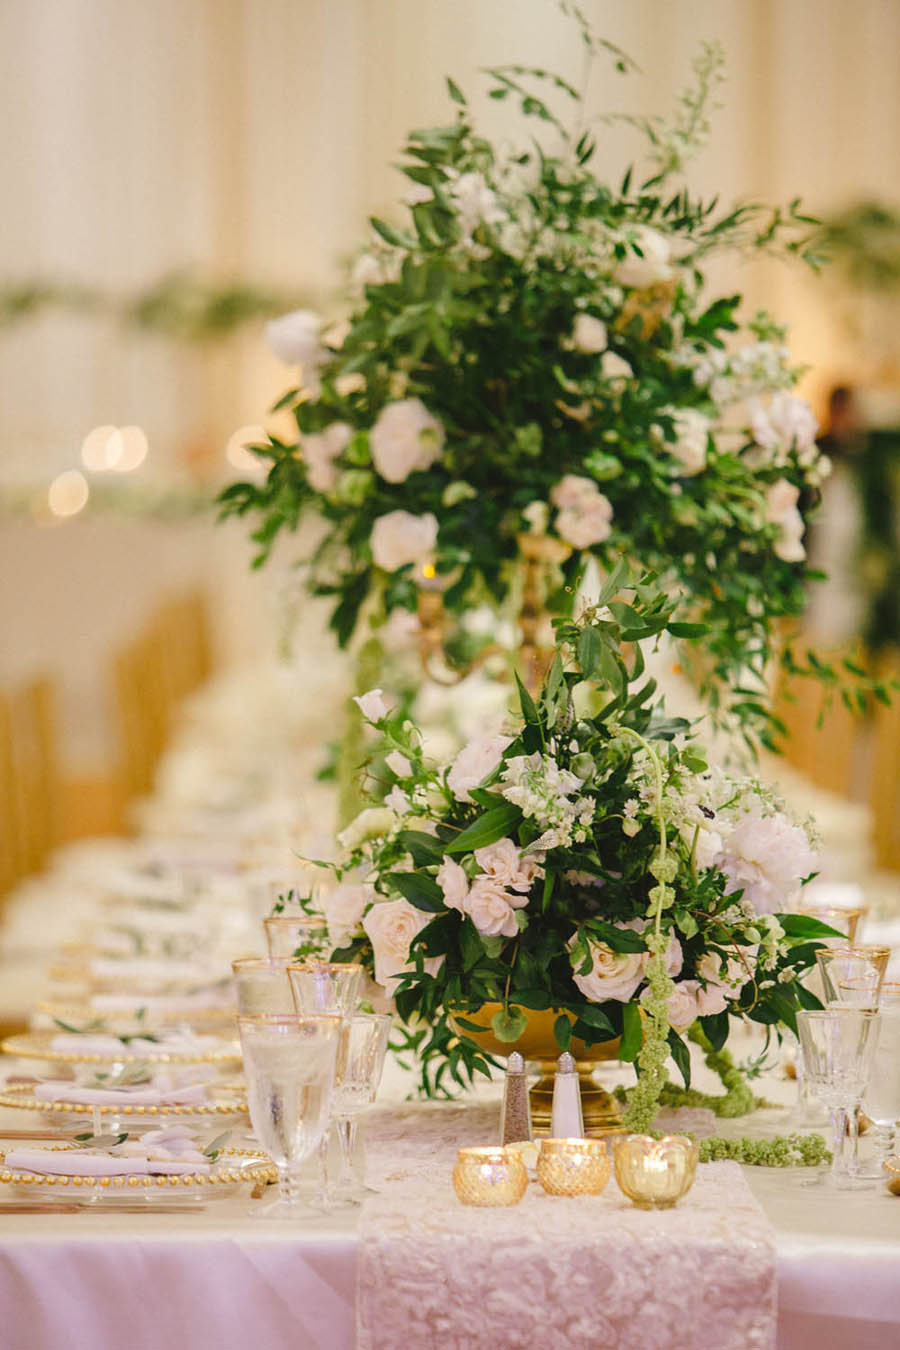 White and Greenery Ballroom Wedding Reception Tall Centerpiece in Gold Candelabra, Small Votive Candles